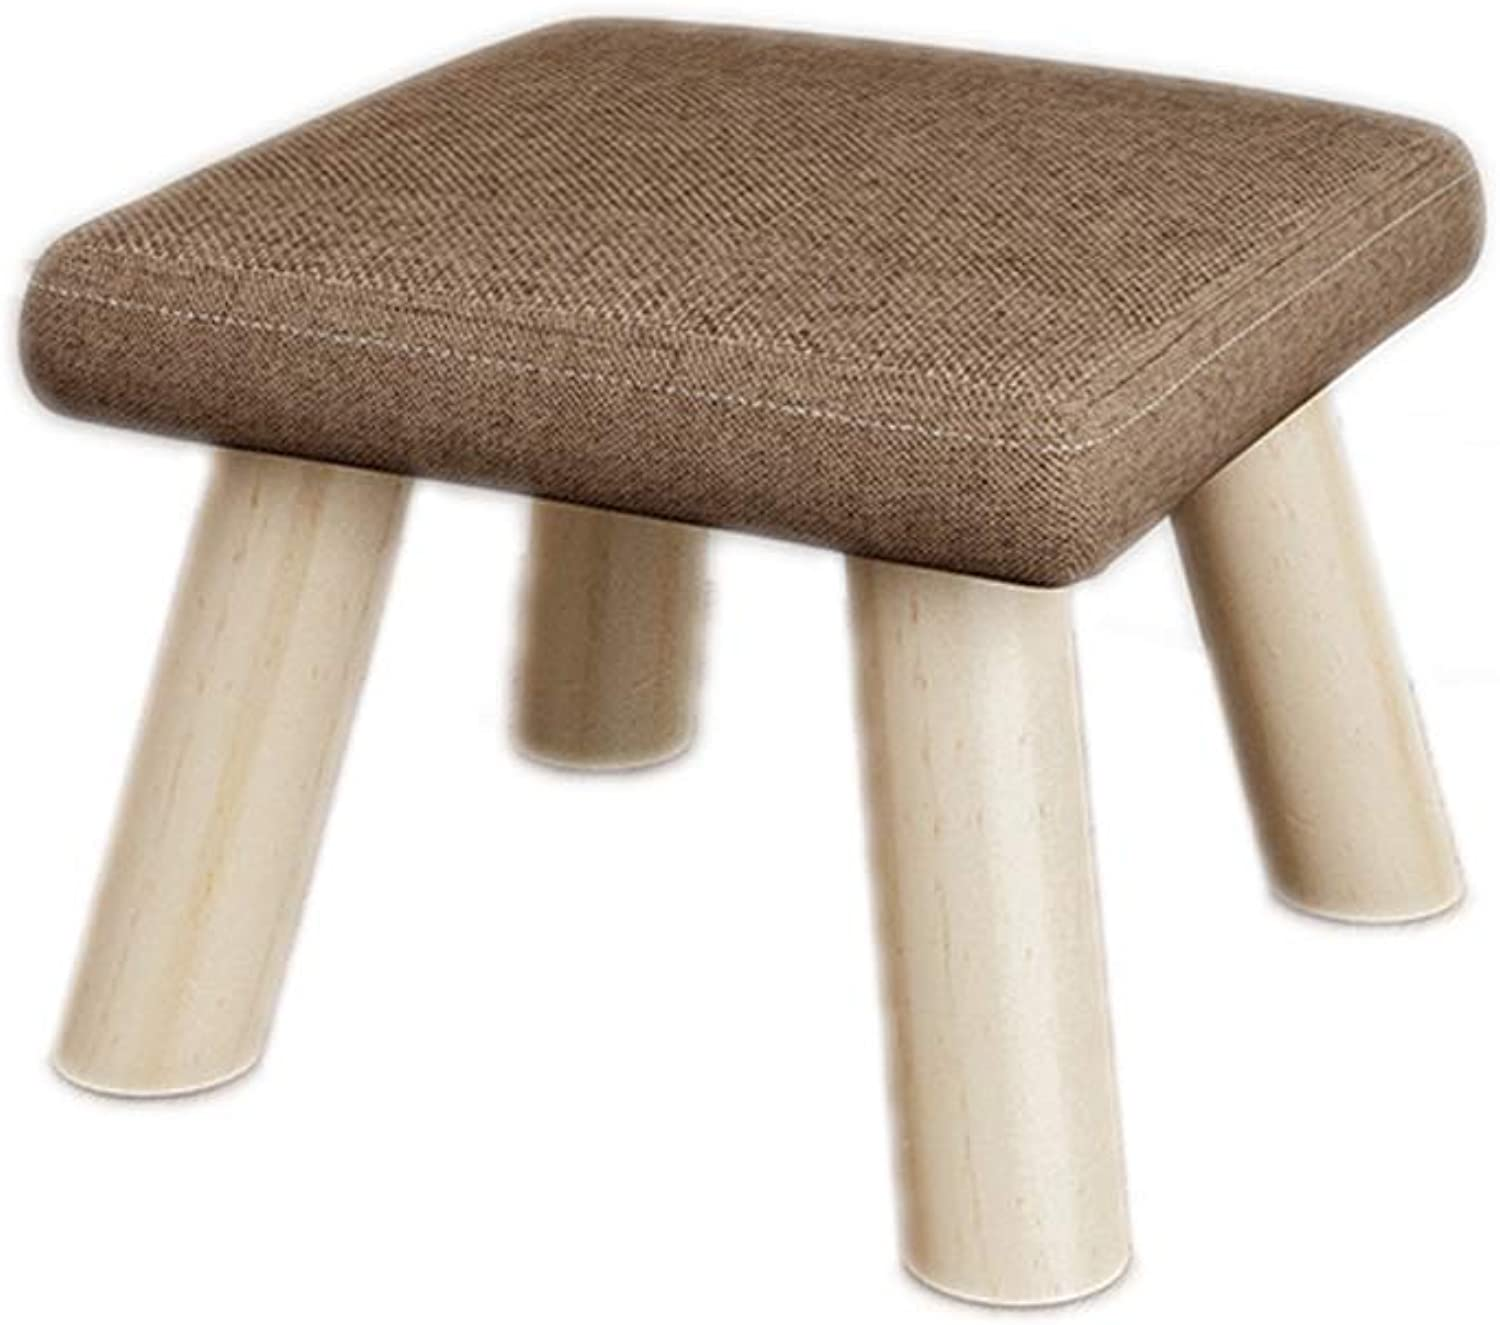 Footstool Removable Cover Upholstered Seating Chair Foot Stools Home Comfortable Seat Wooden Legs LEBAO (color   Brown)